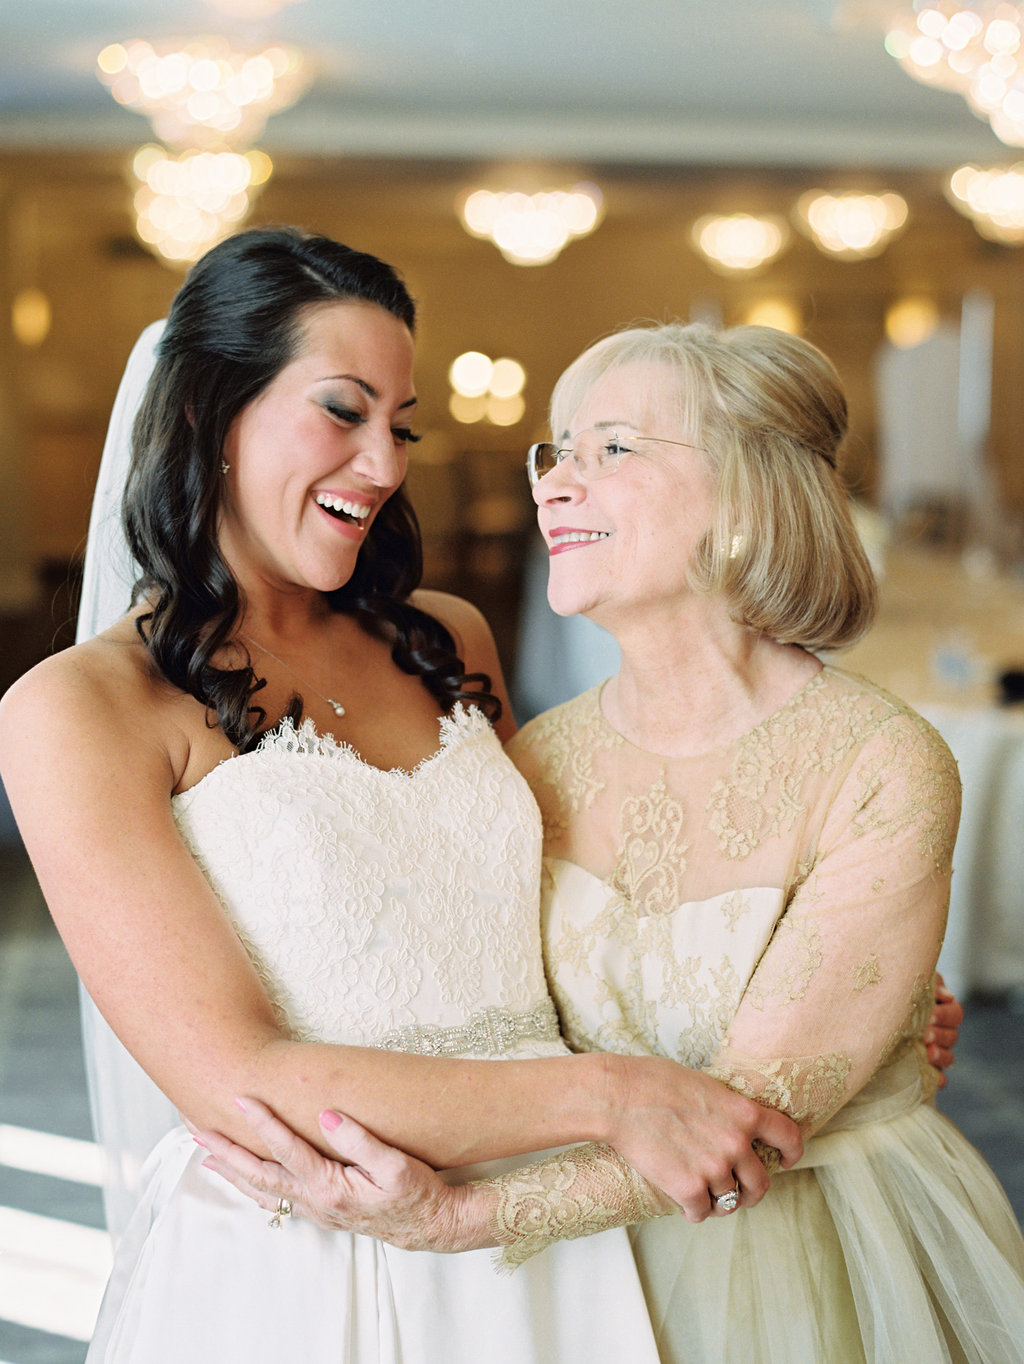 Bride and her mom hug in their beautiful dresses both with lace on them and delicate detailing